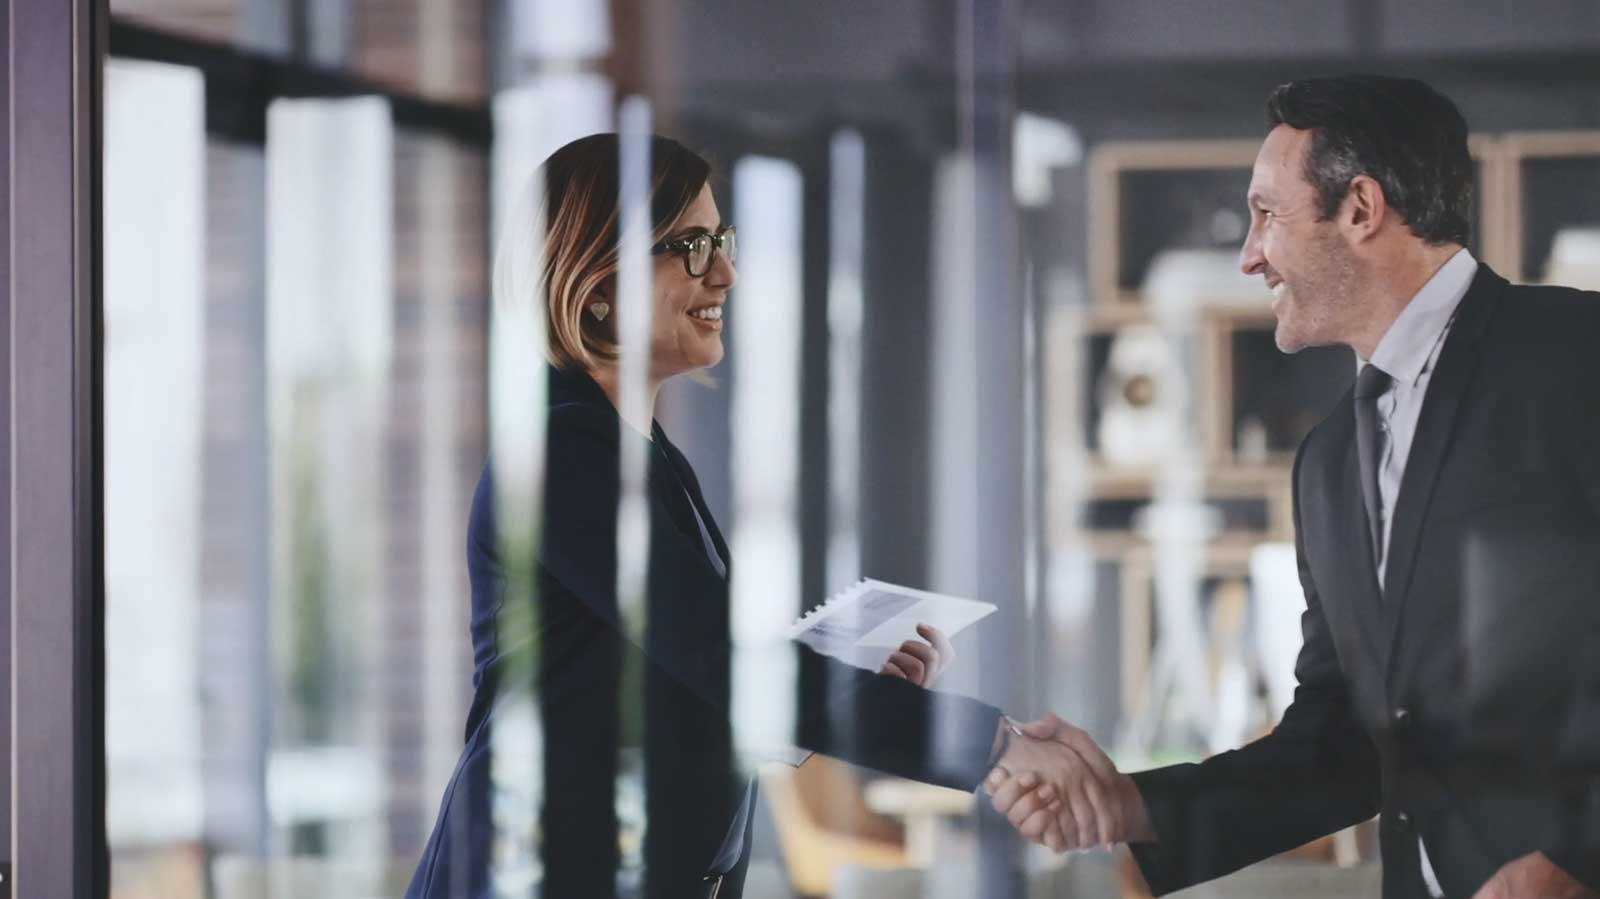 A business woman and business man exchanging a handshake in an office.